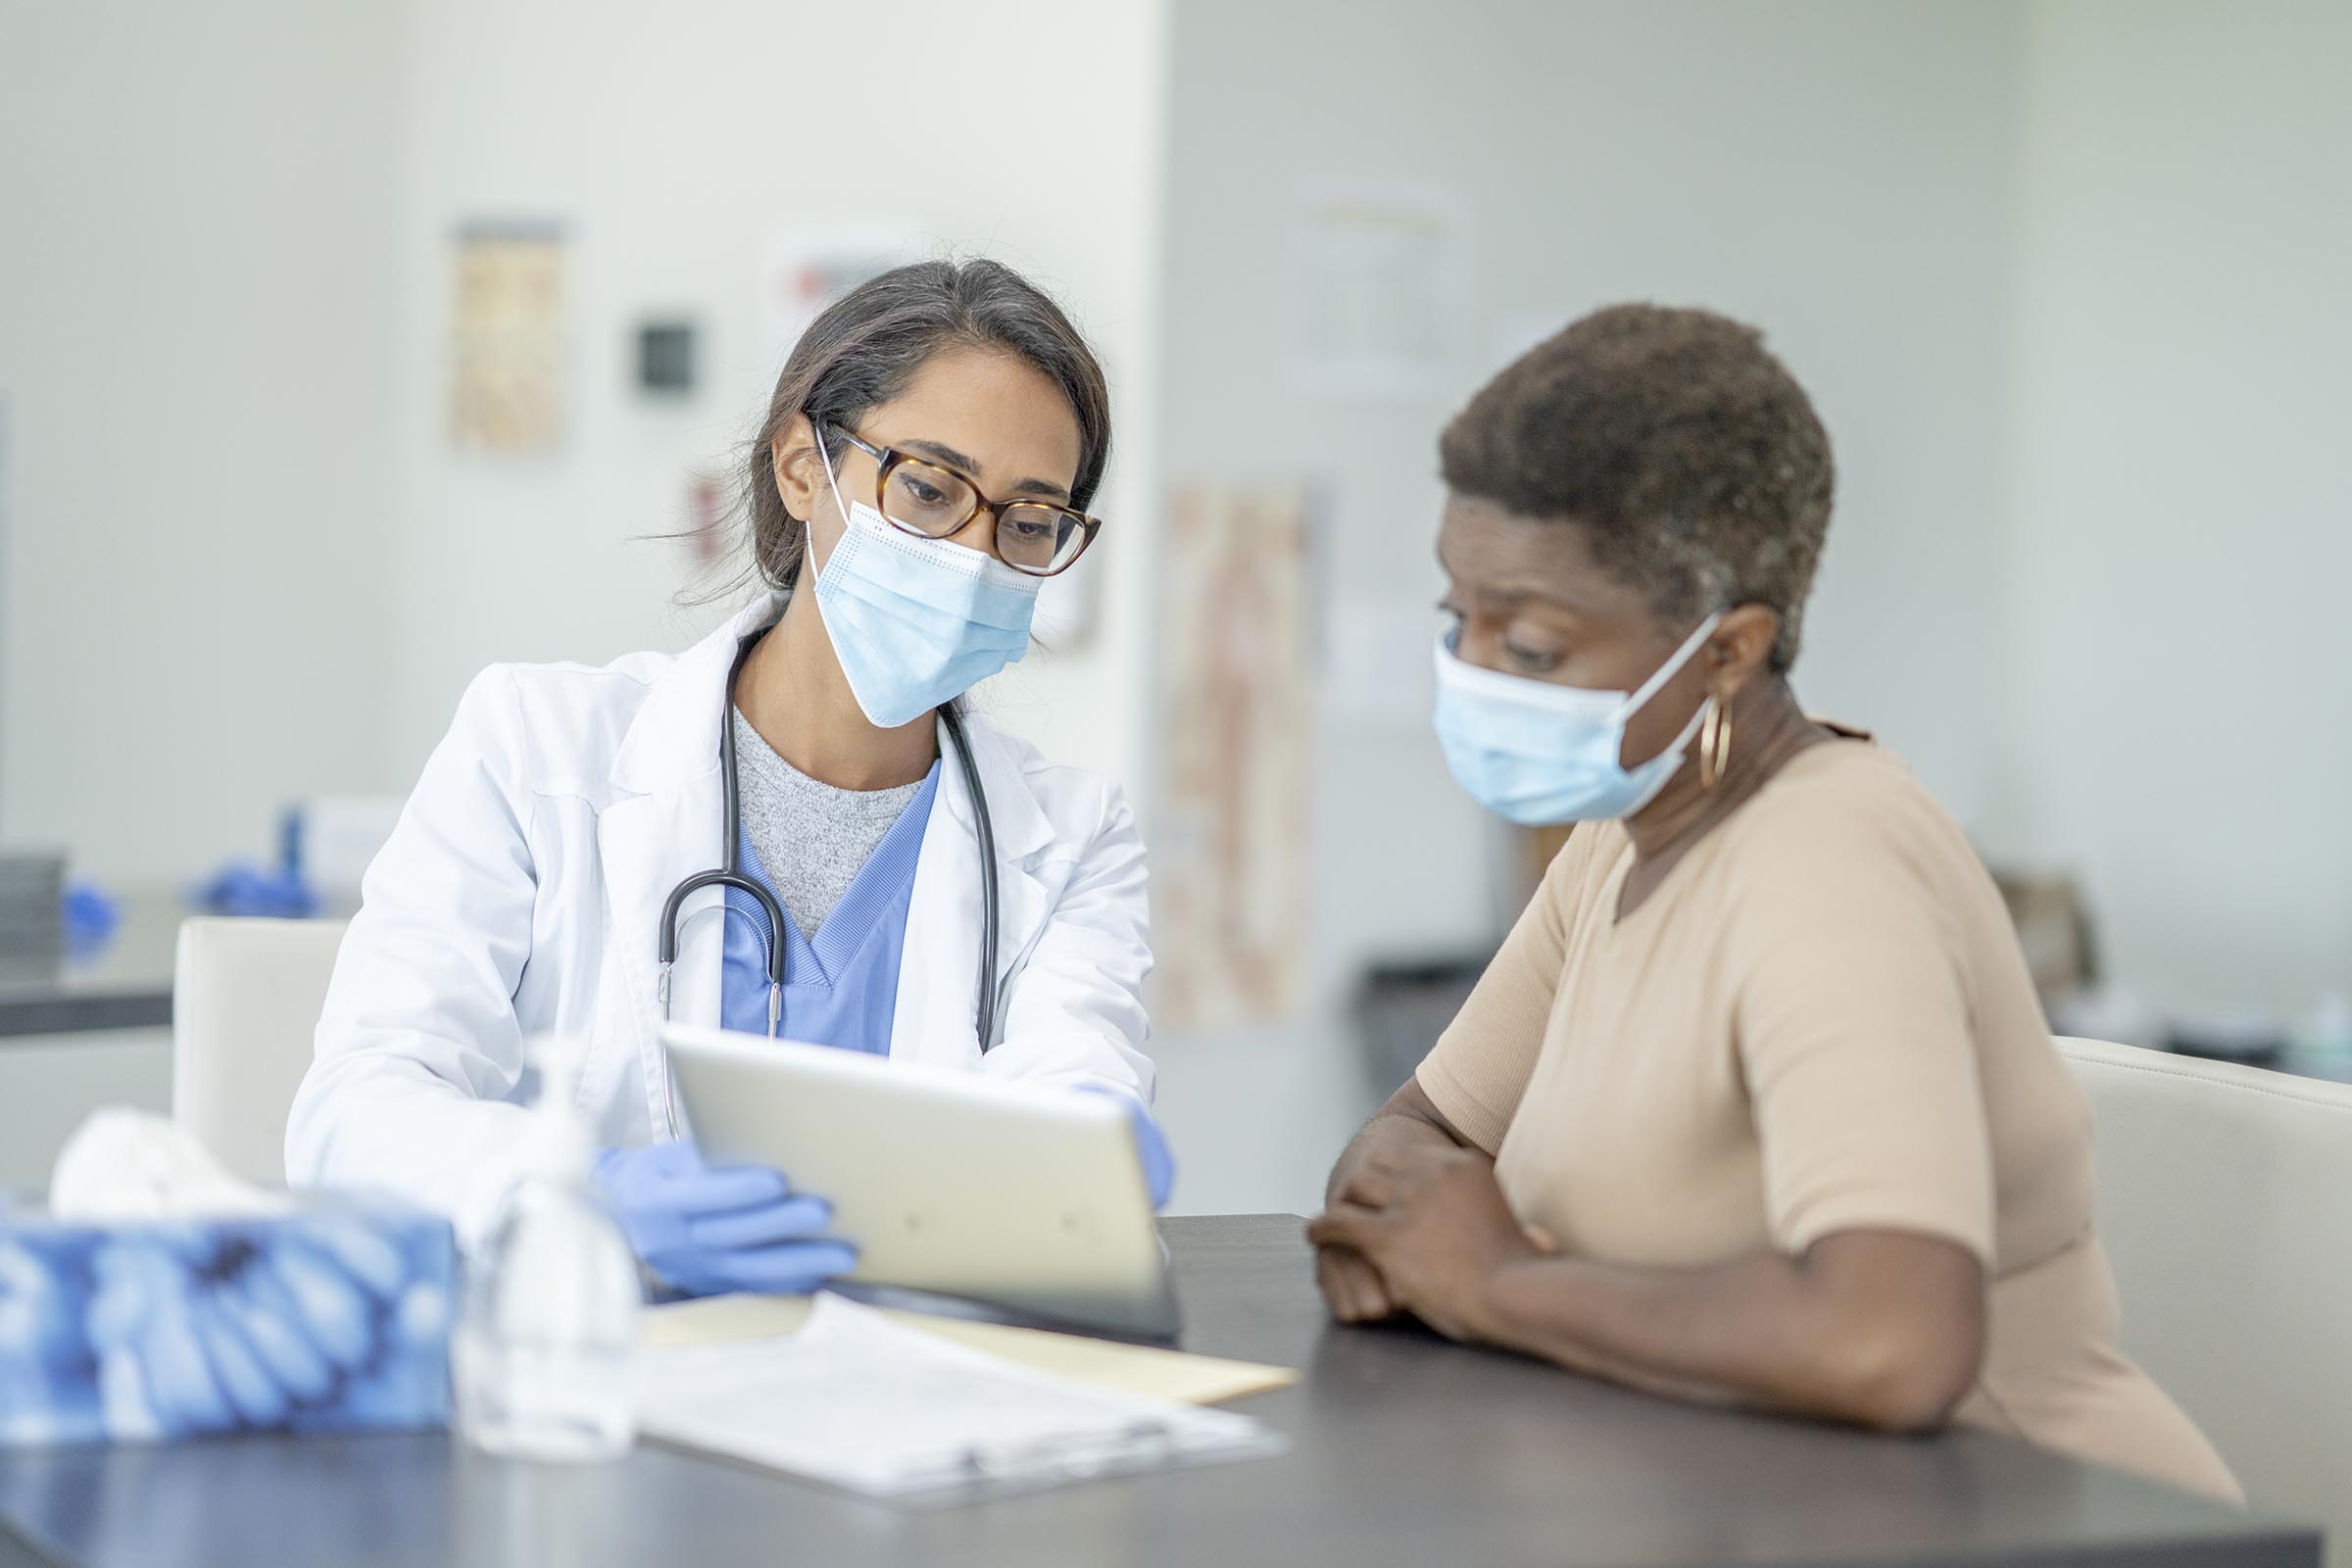 Doctor and patient during exam